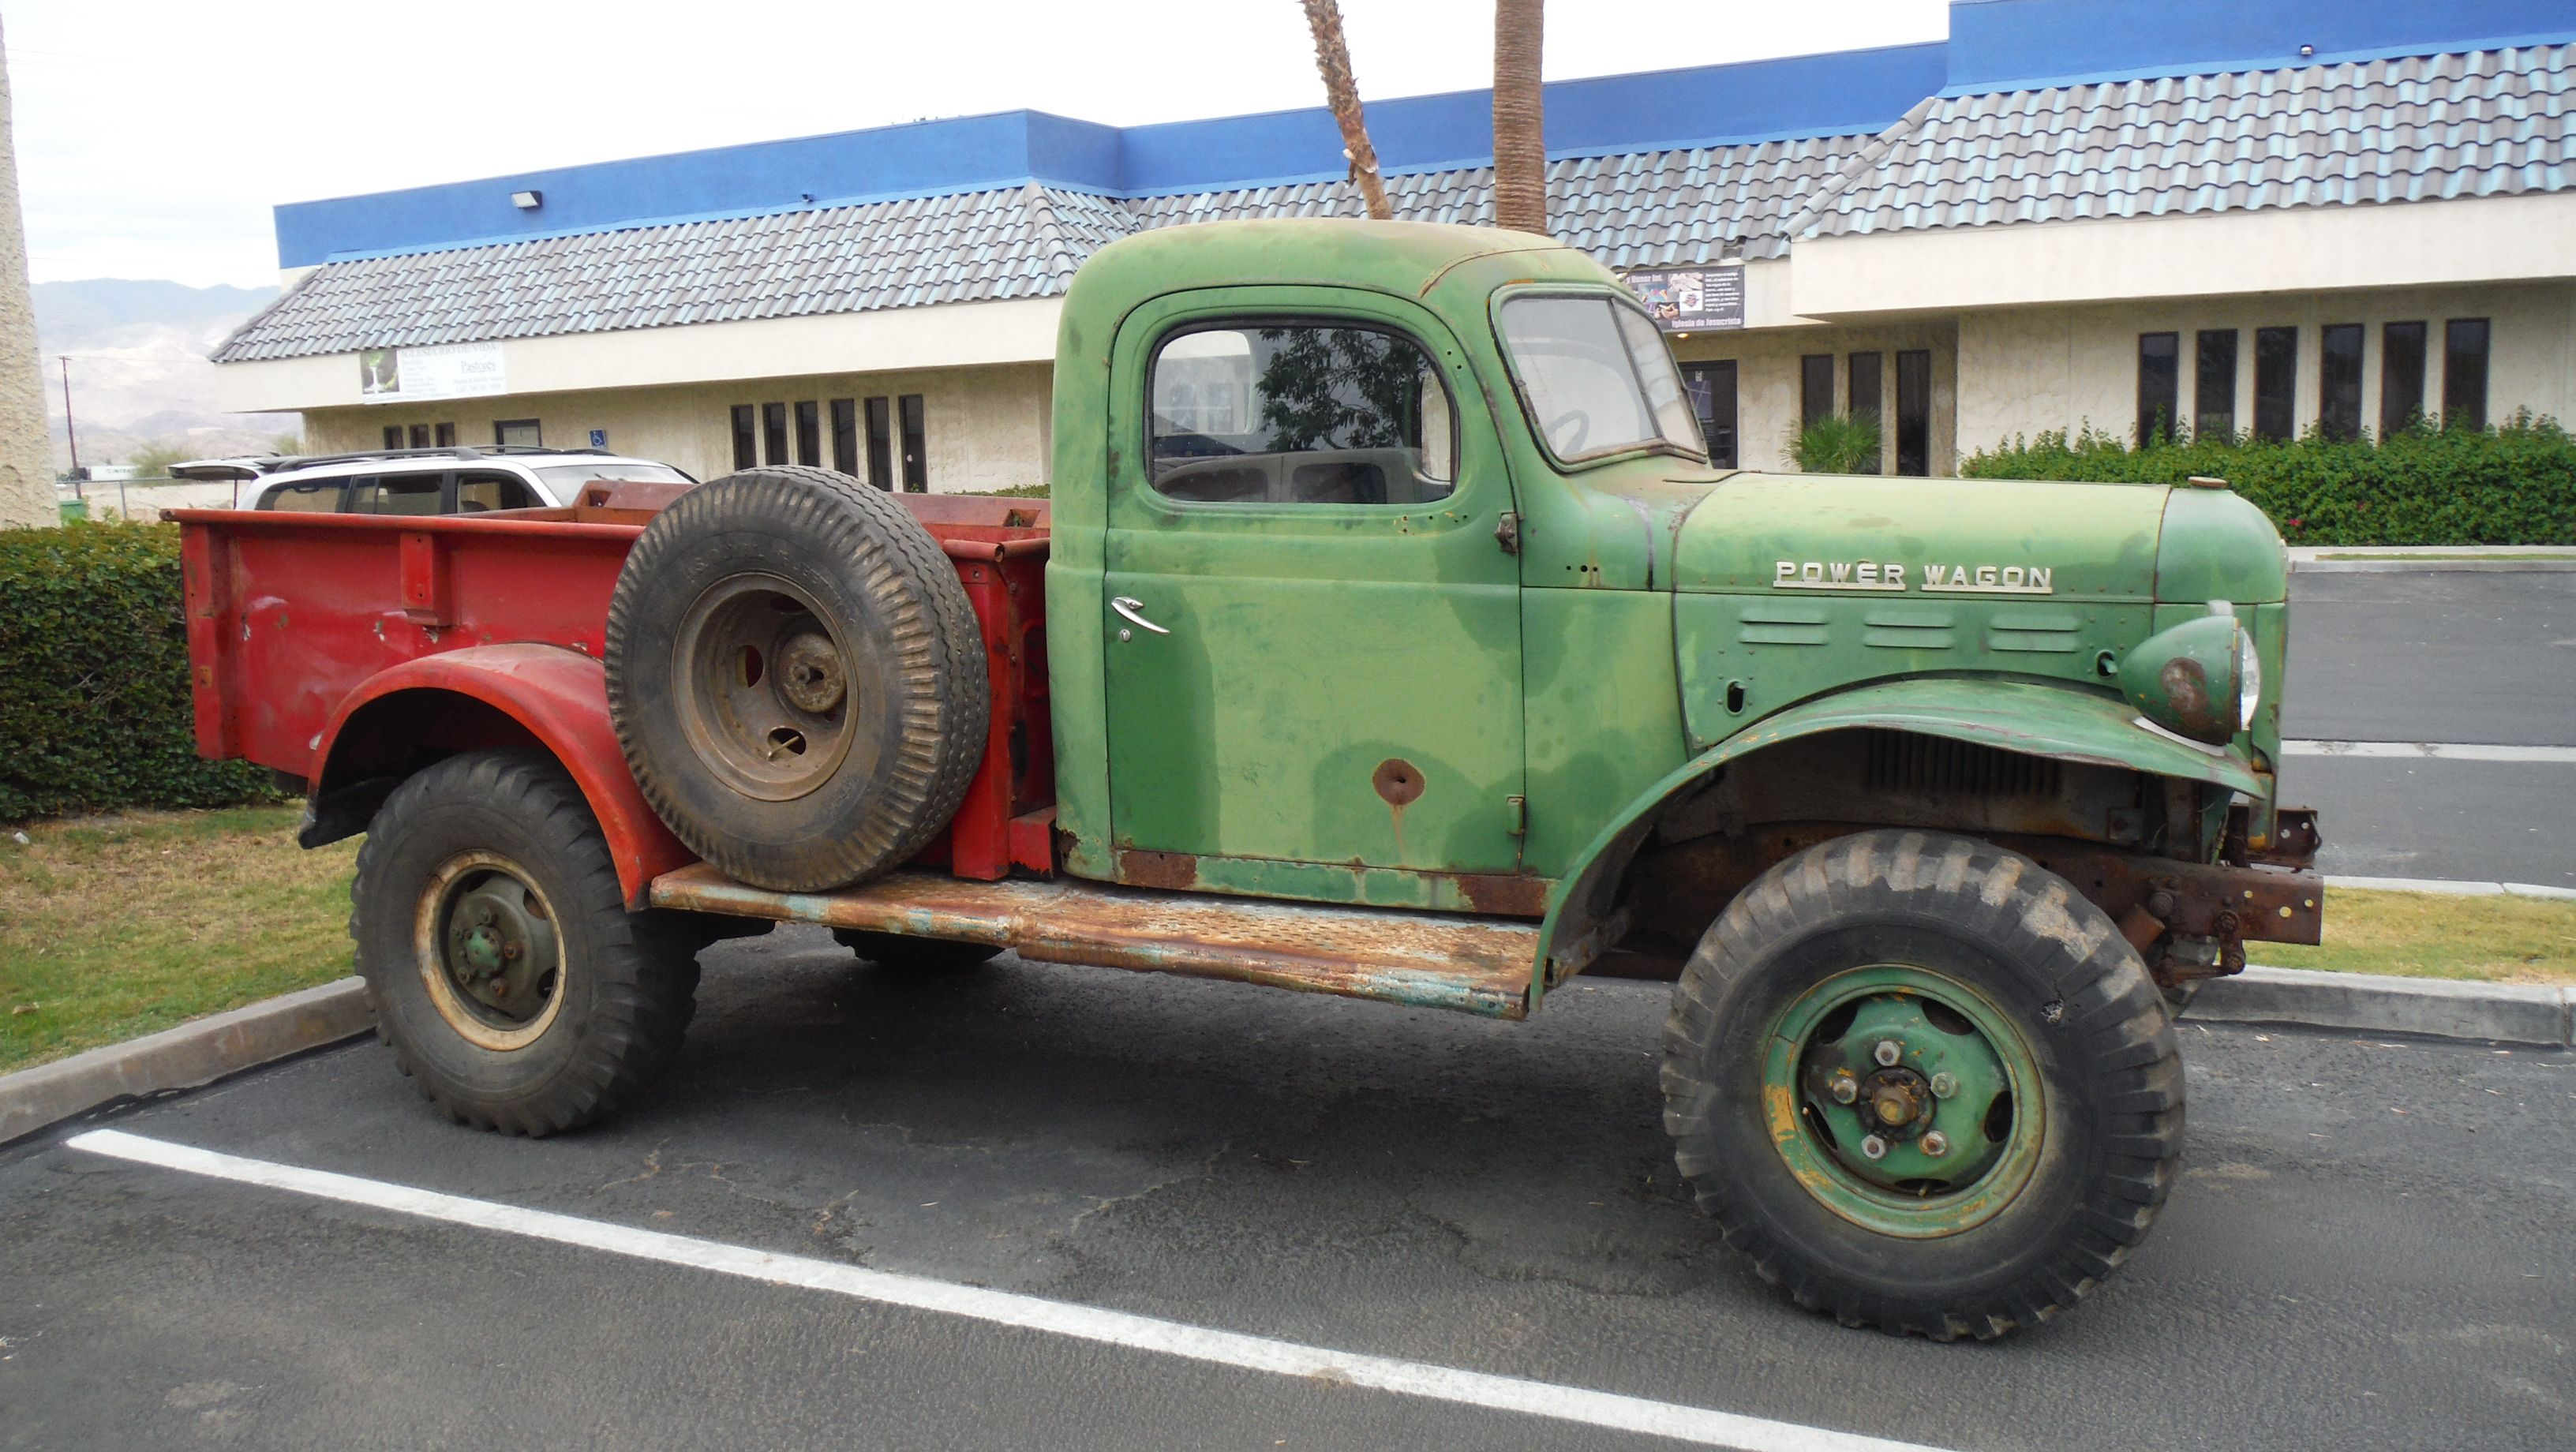 19 950 1957 Dodge Power Wagon Wm 300 U S Navy Navy For Sale